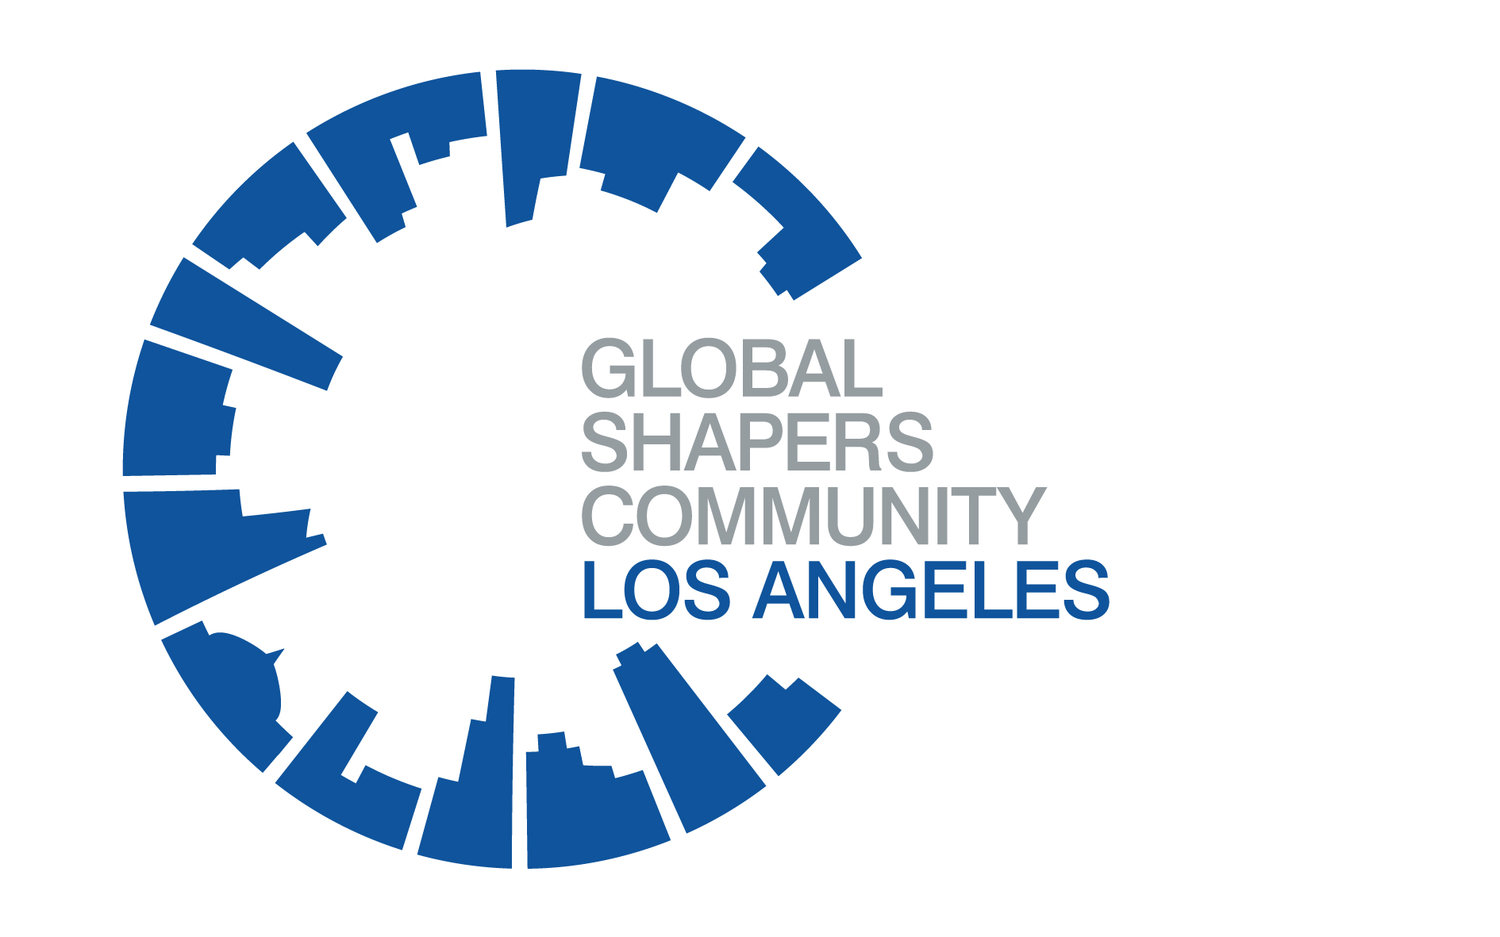 Los Angeles Global Shapers